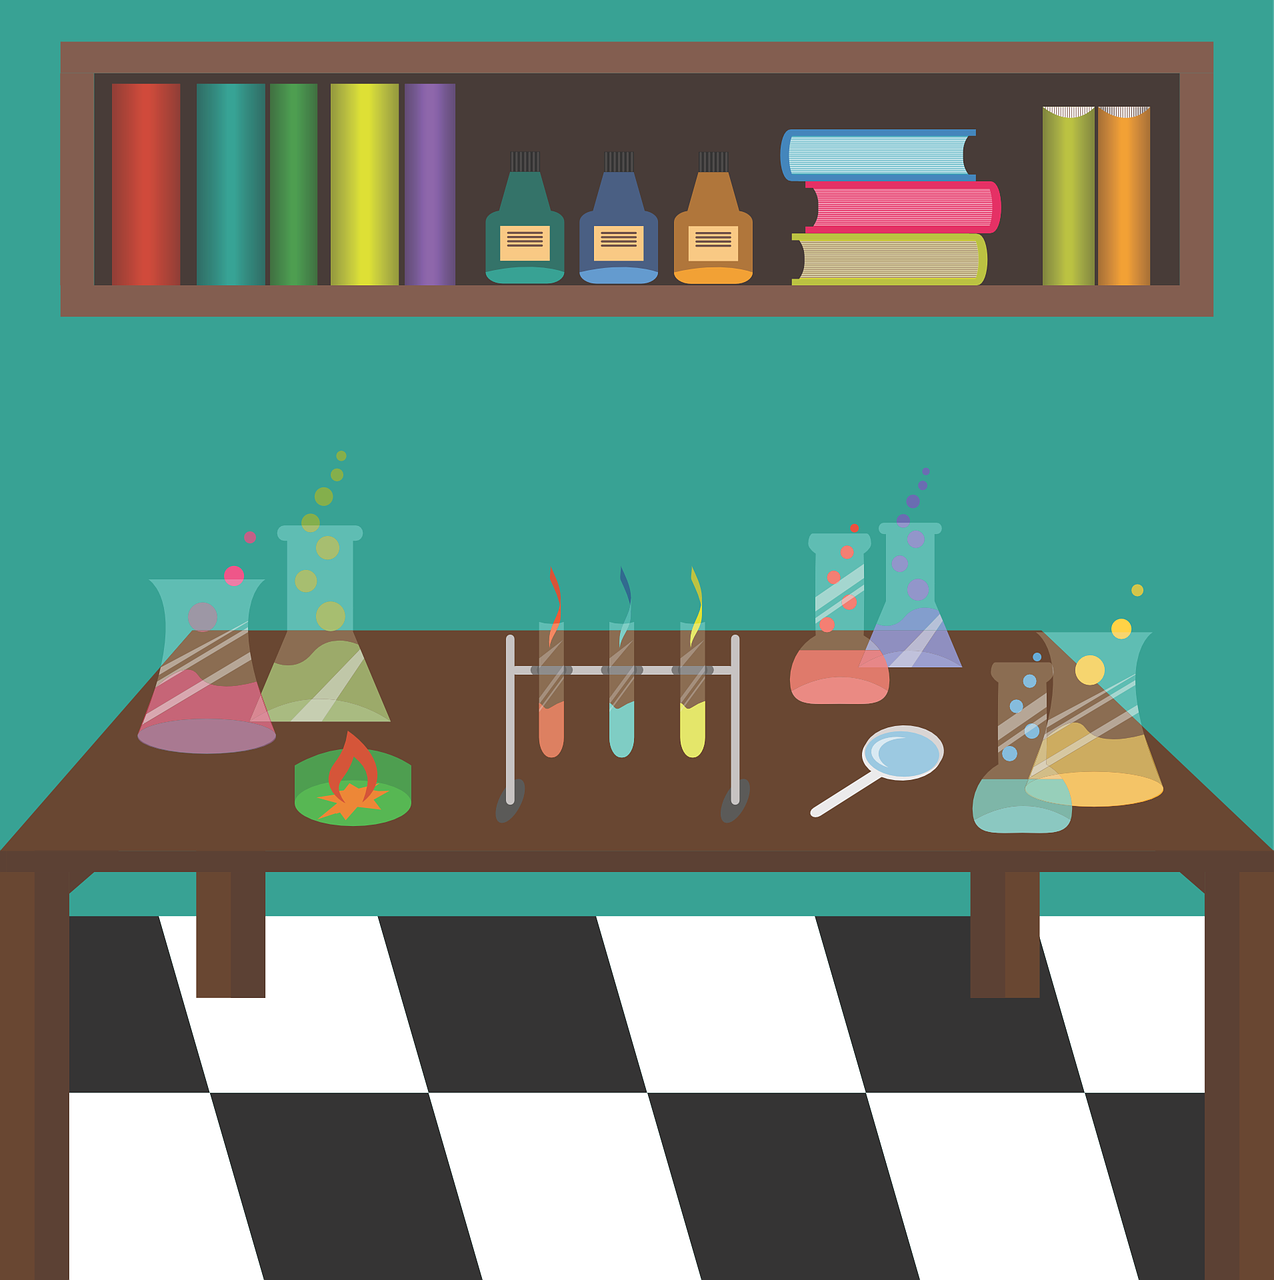 Room clipart science laboratory #3